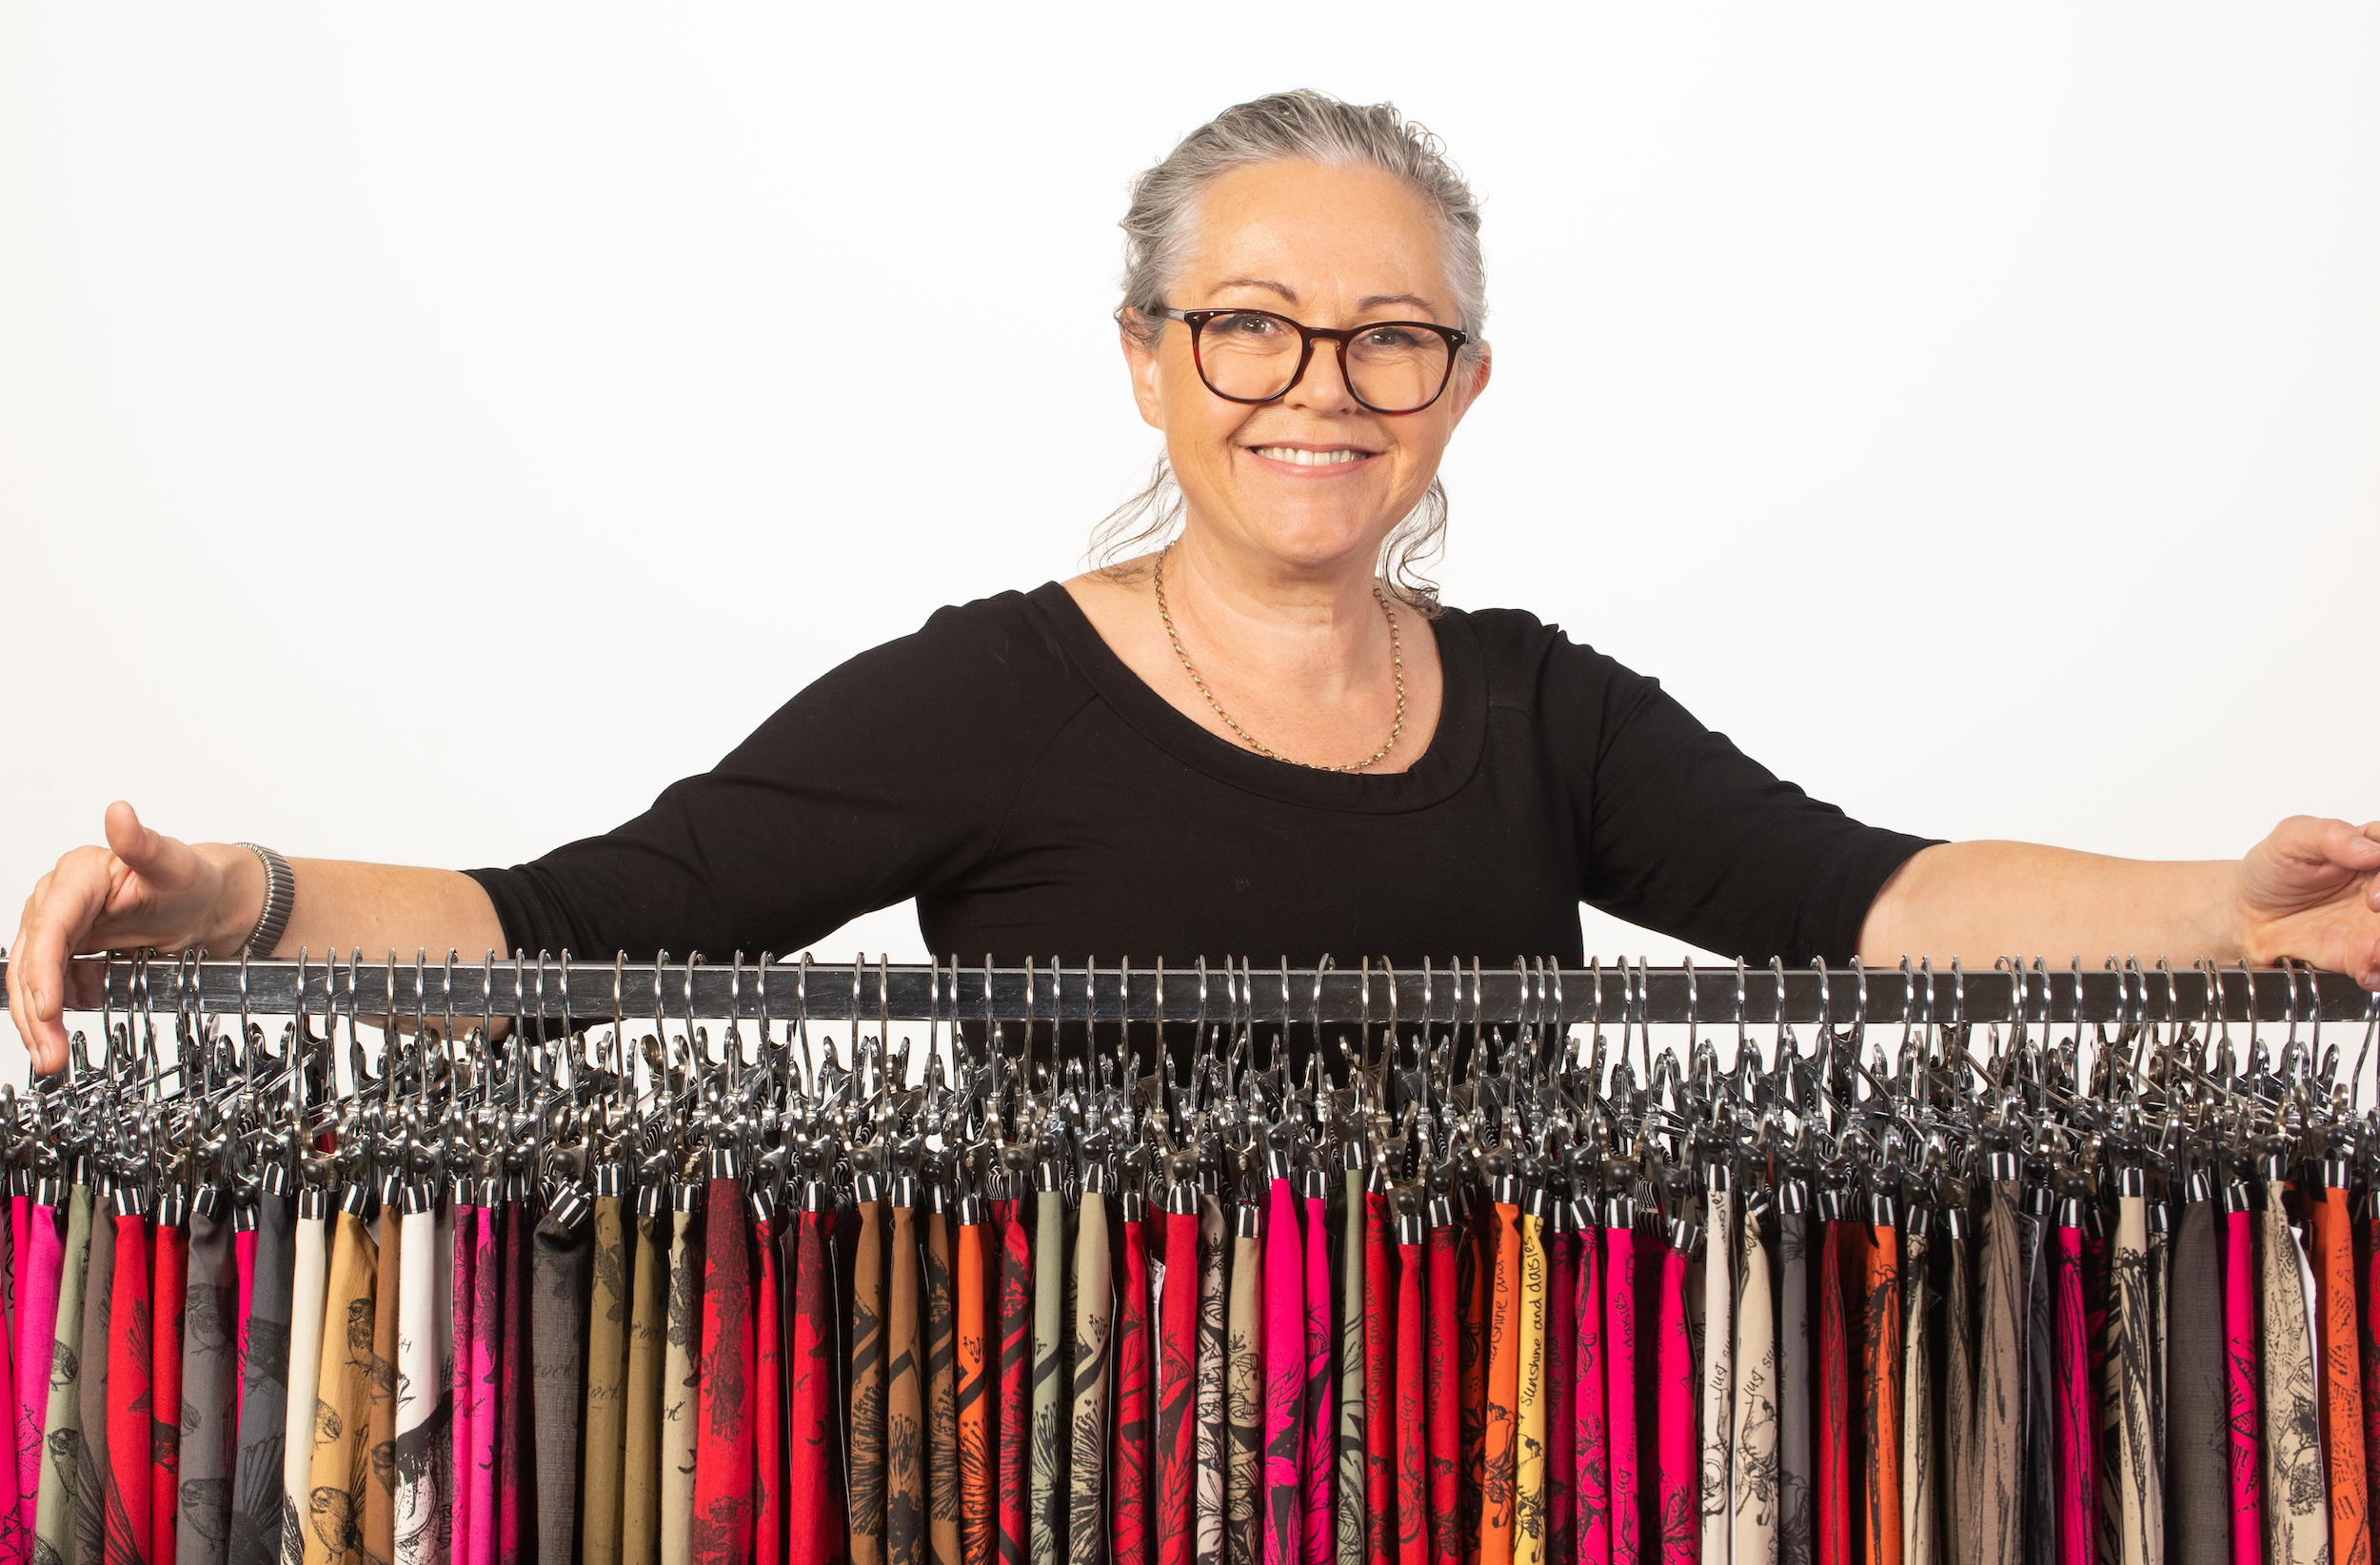 Image of Jill from Madcat Design standing with an selection of the skirts she makes